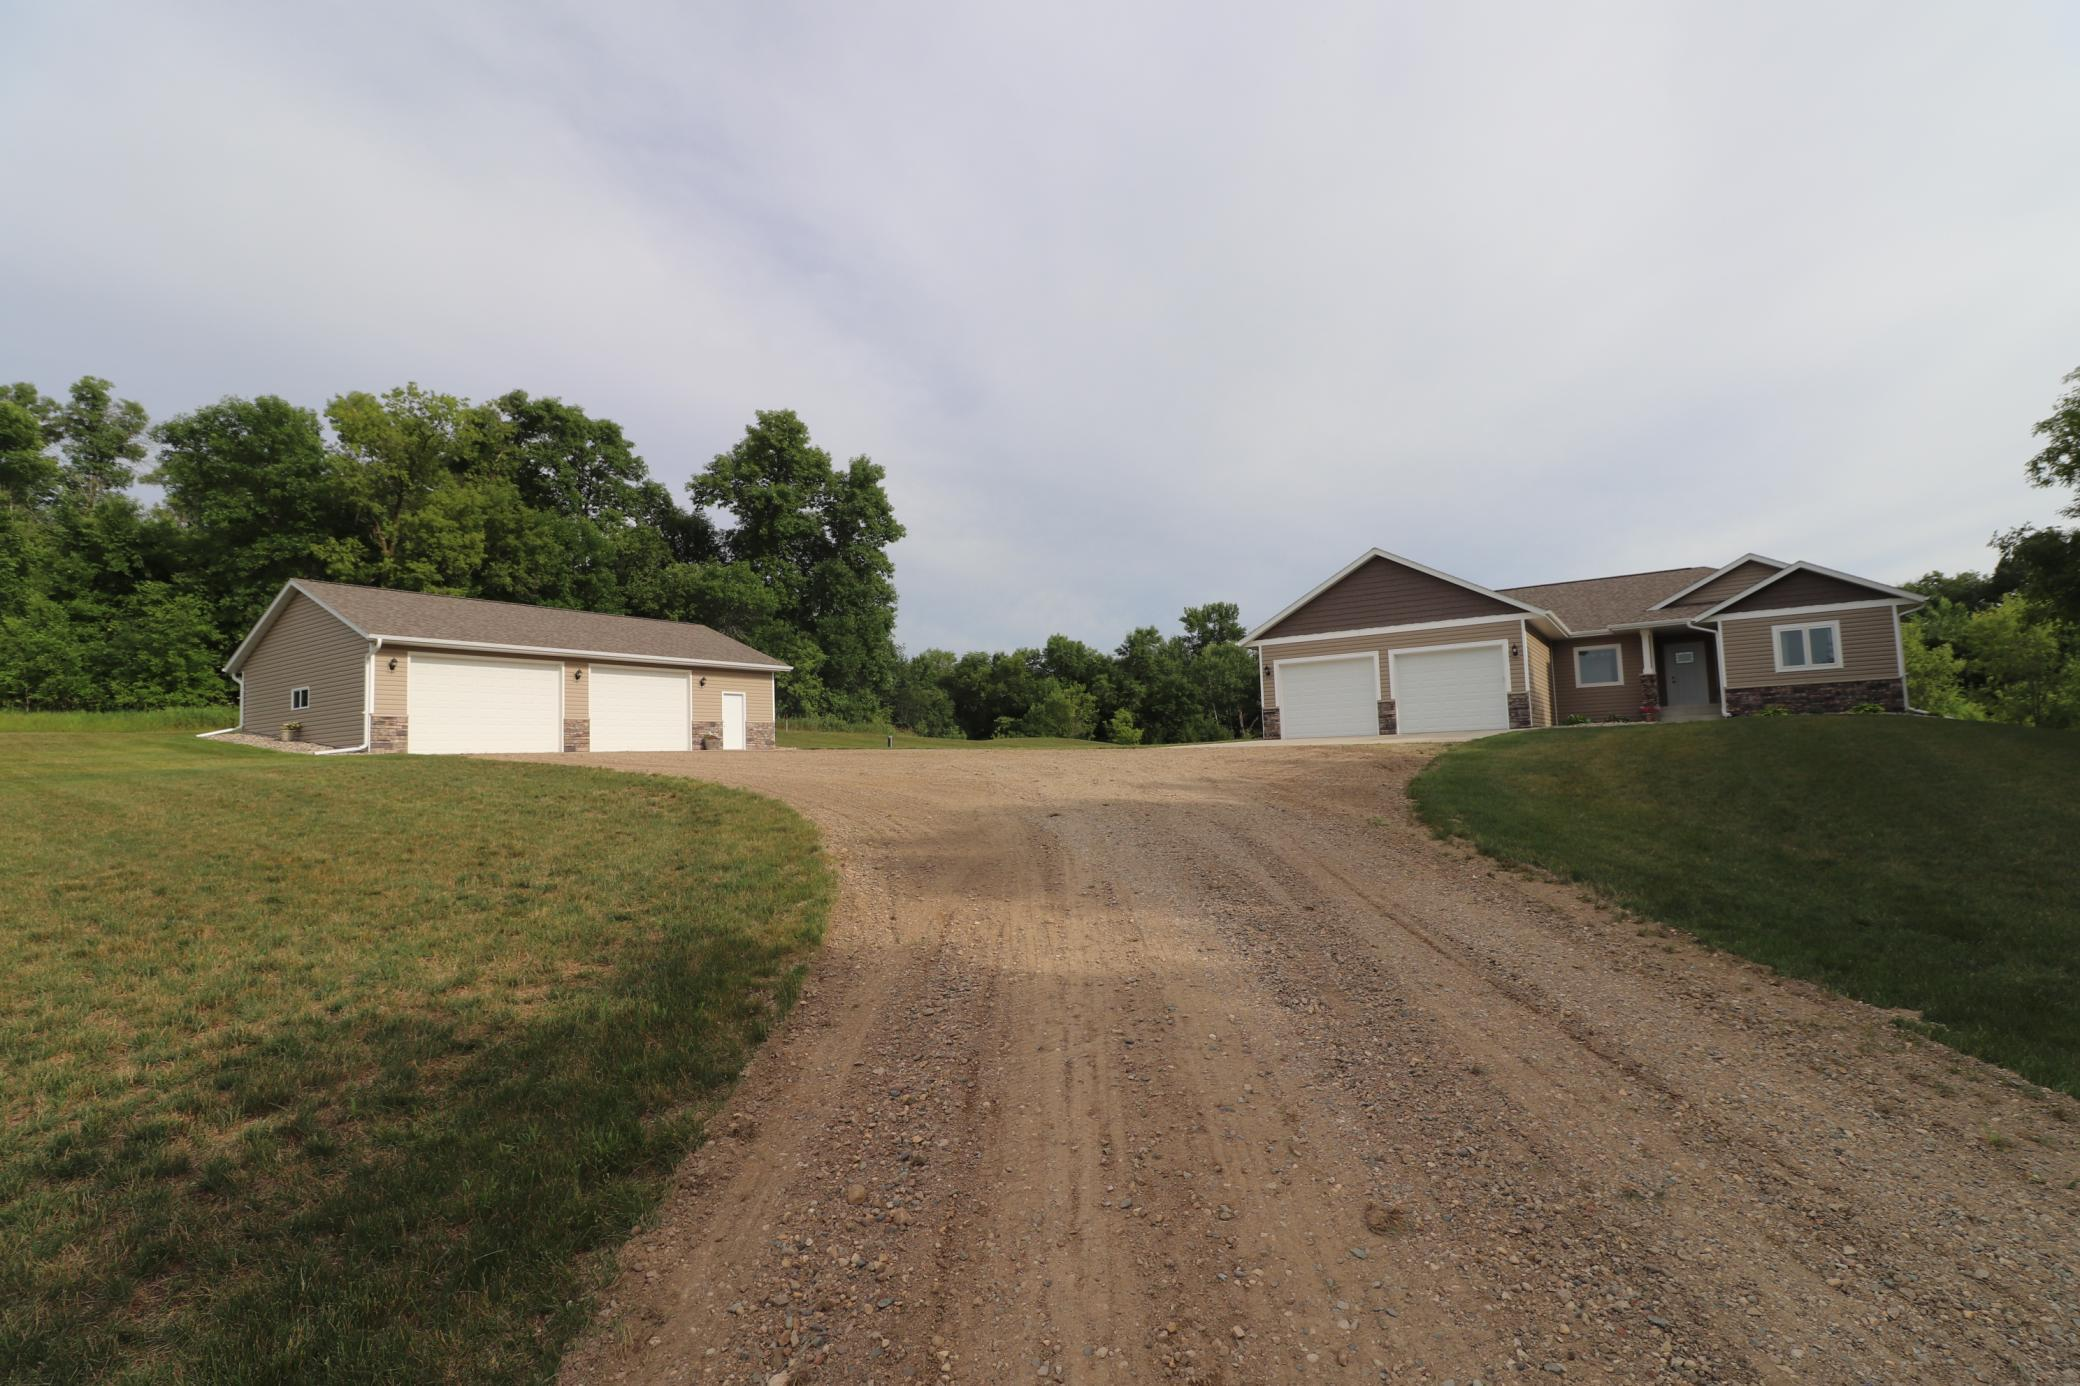 29506 223rd Property Photo - Albany, MN real estate listing